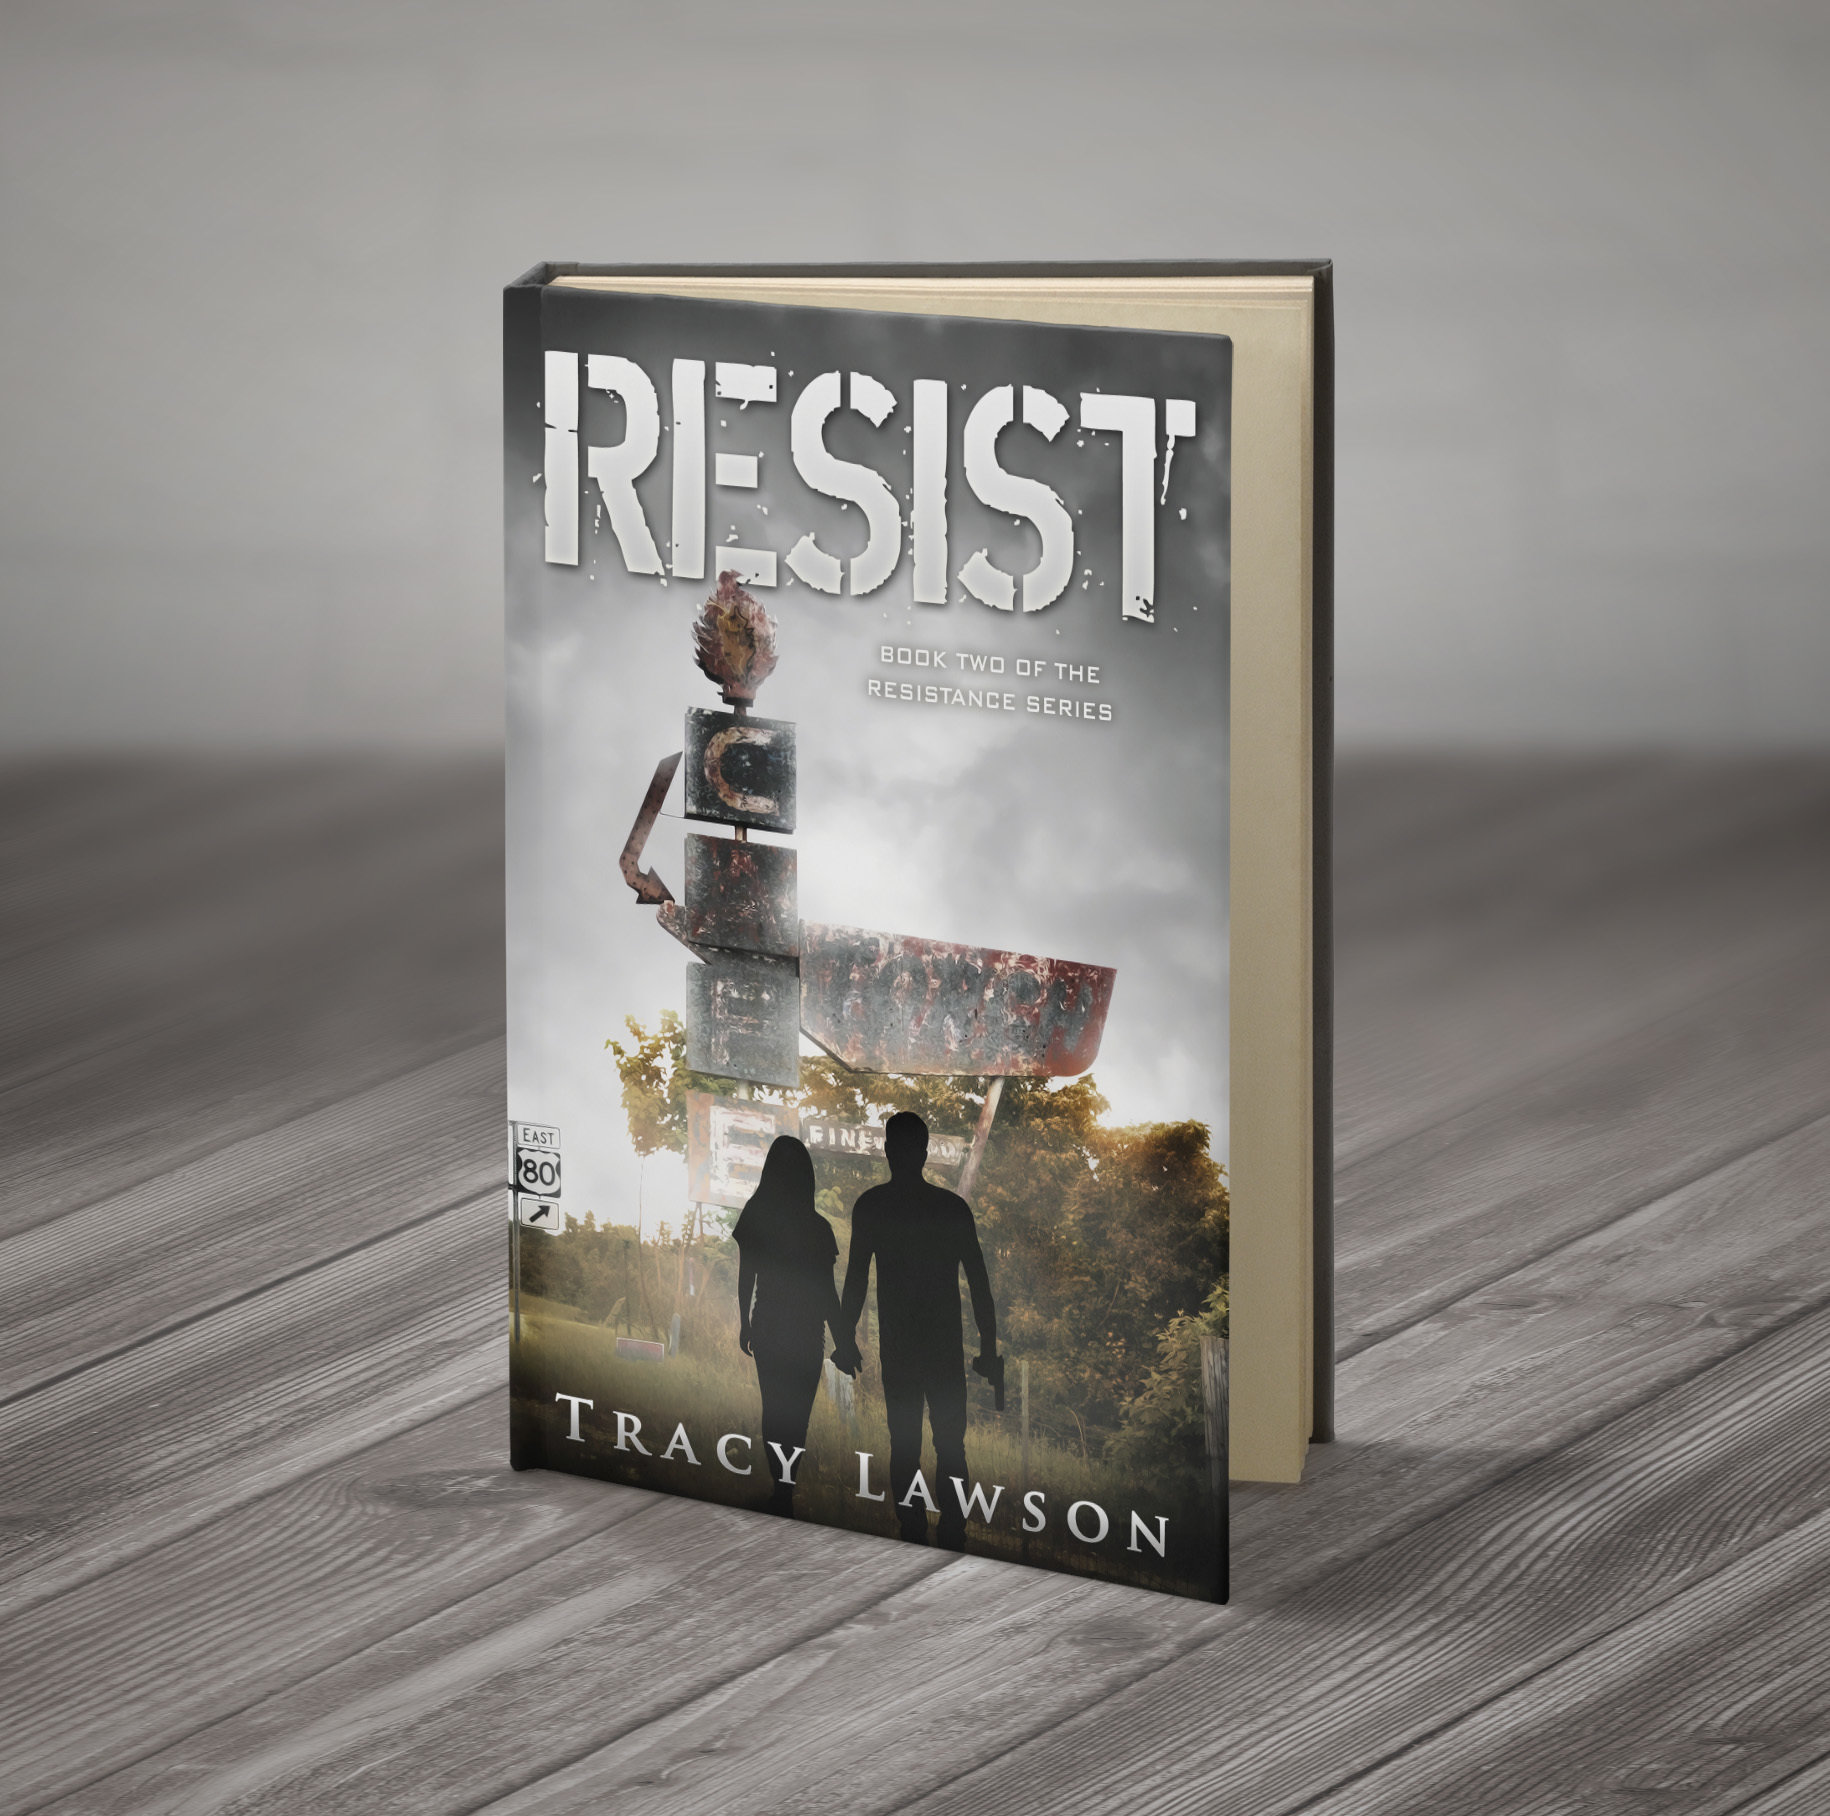 Resist: Book Two of the Resistance Series (signed) 00001